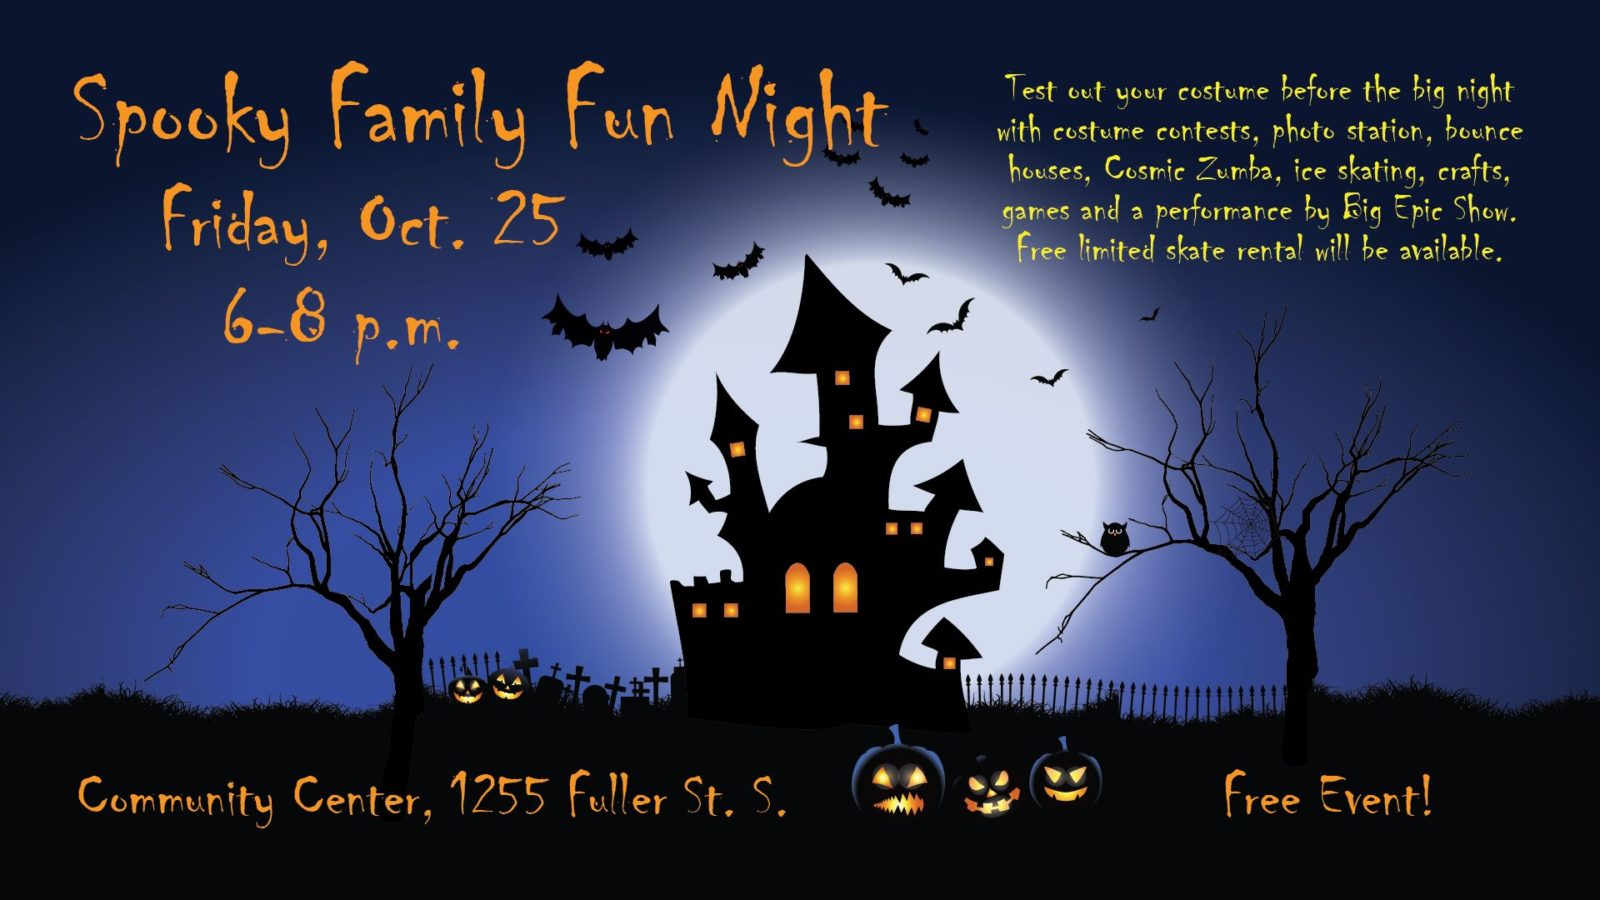 Spooky Family Fun Night